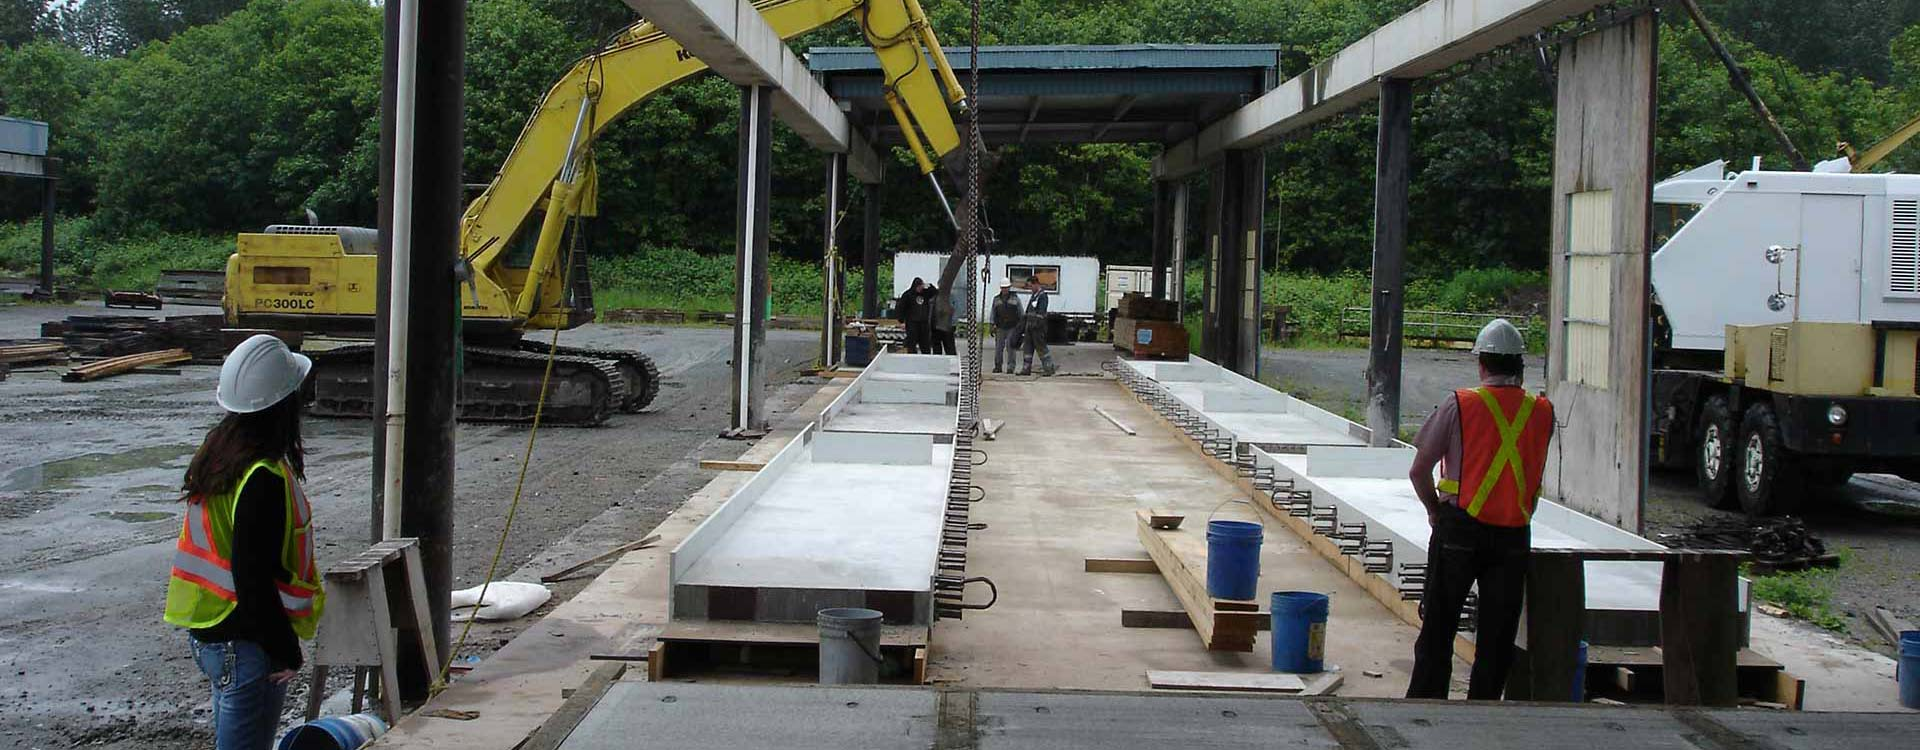 I-beams and Pioneer Precast Products workers